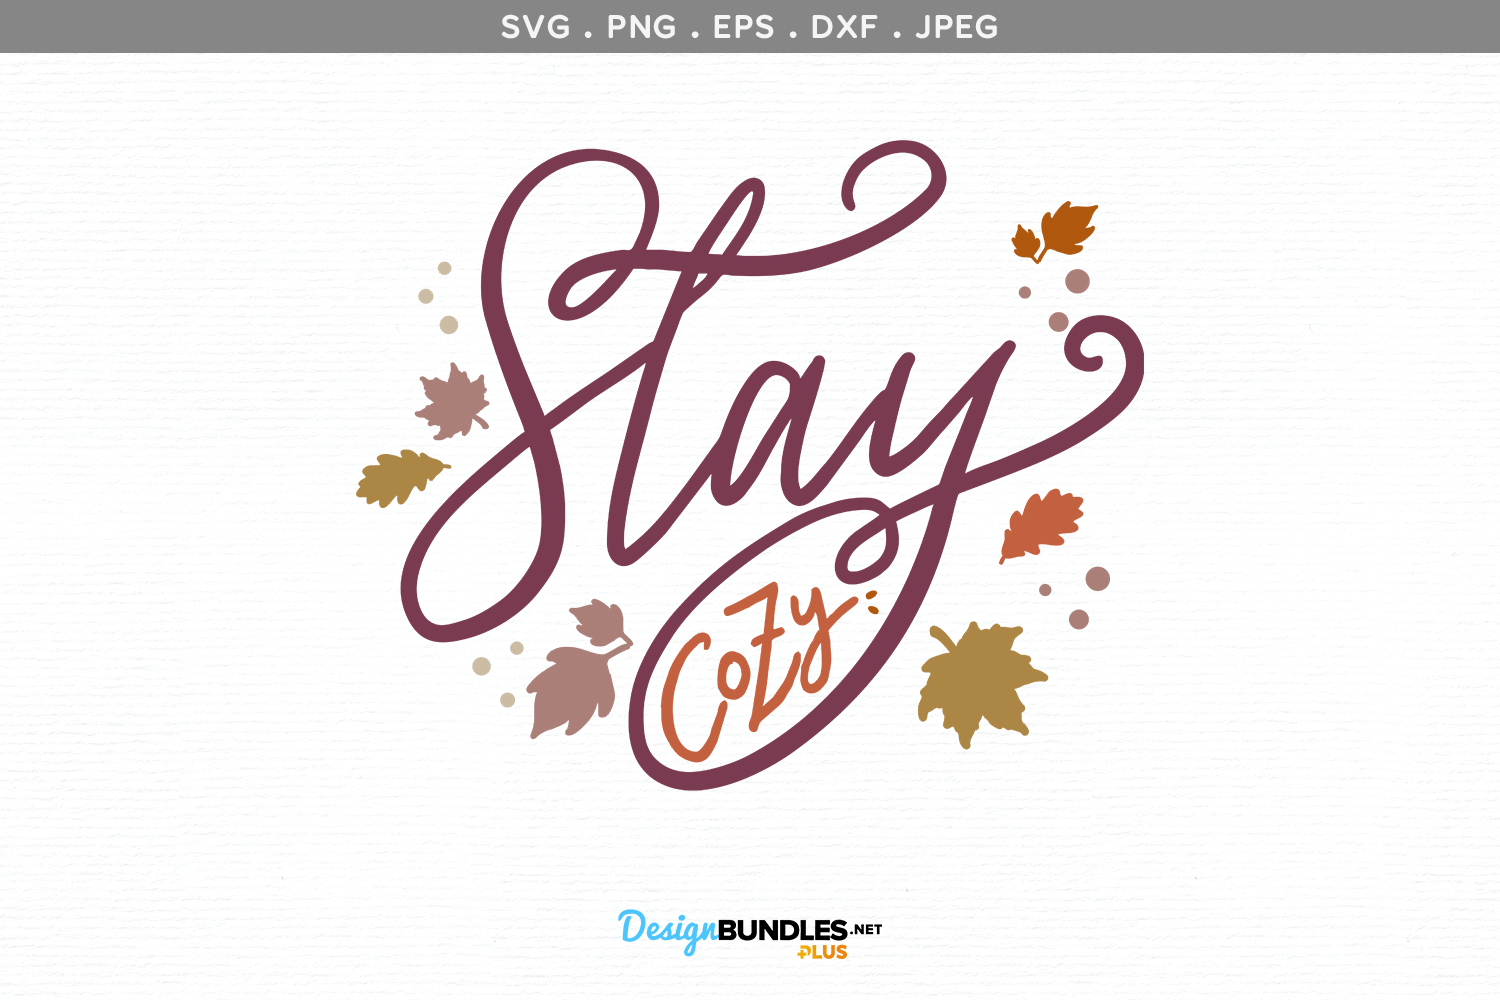 Stay Cozy - svg, printable example image 2